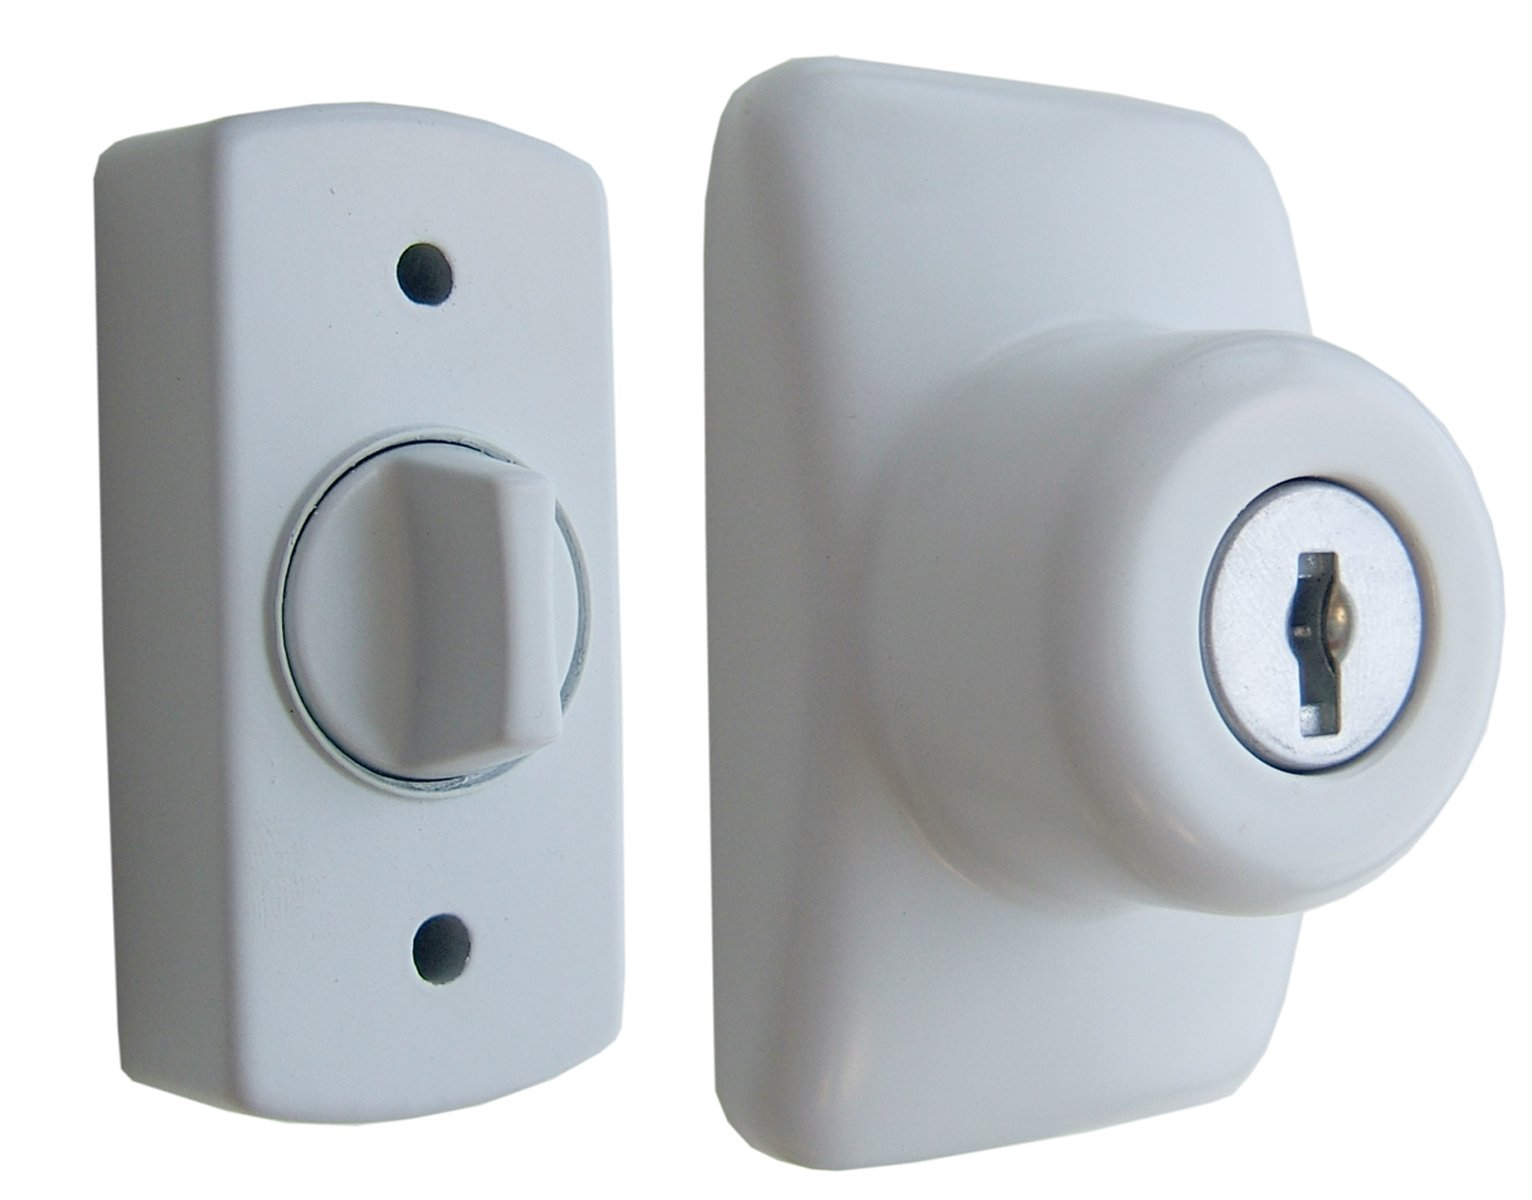 Ideal Security GL Keyed Deadbolt For Storm and Screen Doors Easy to Install White